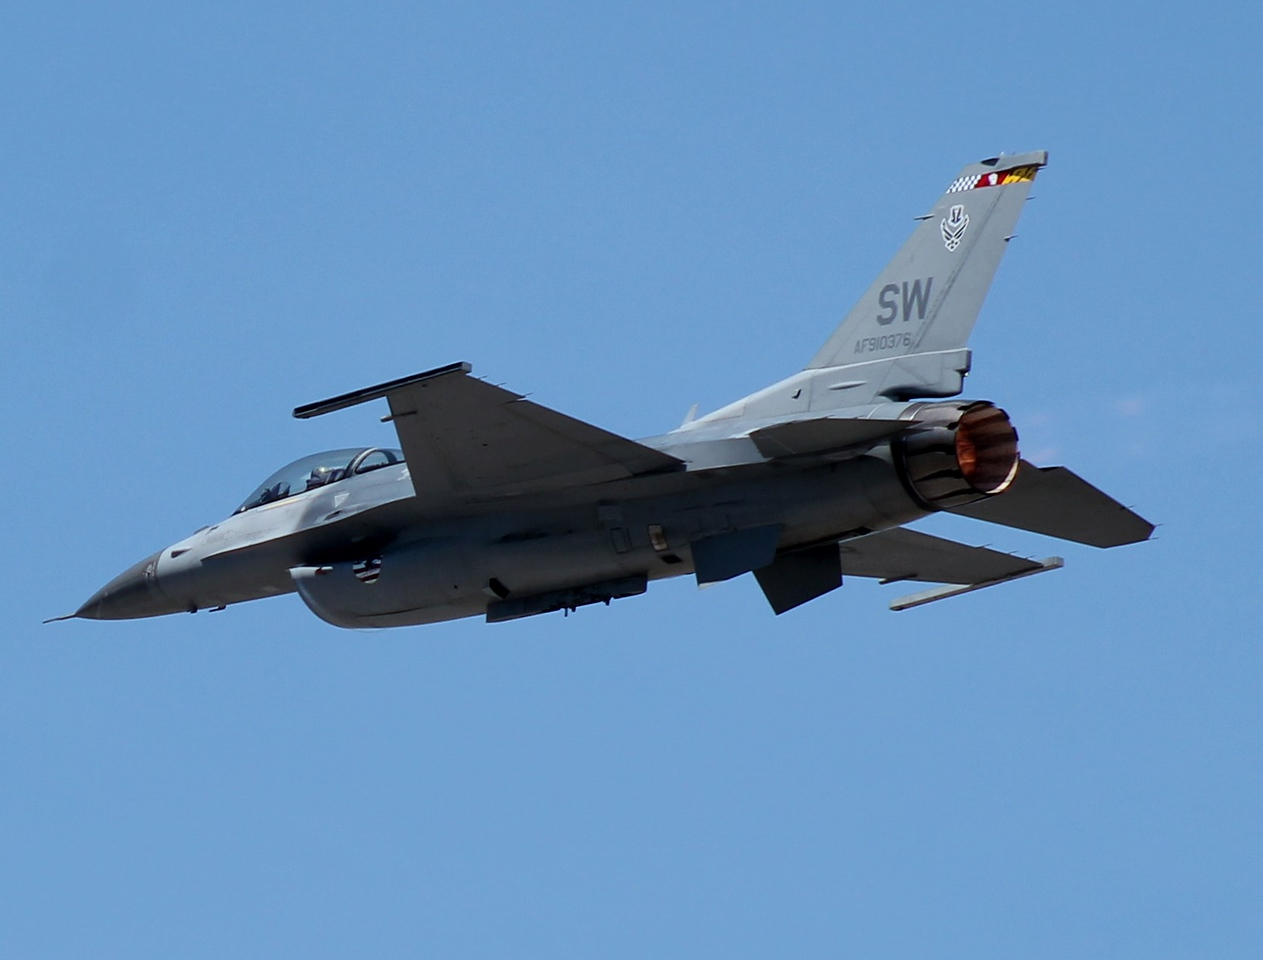 F-16 [91-0376] from Shaw AFB South Carolina.